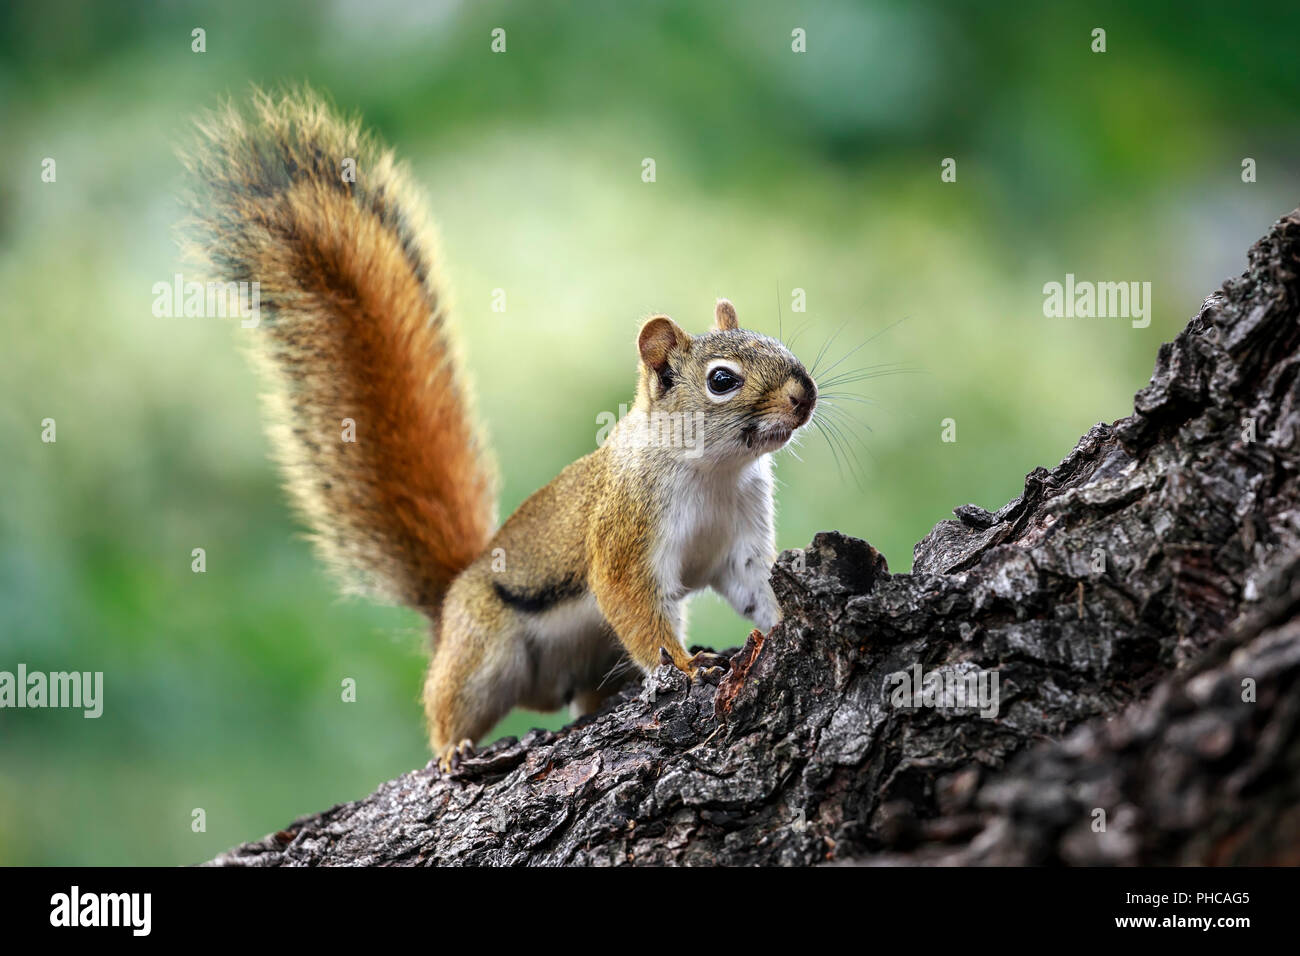 American red squirrel, on tree branch, Tamiasciurus hudsonicus, Manitoba, Canada. - Stock Image